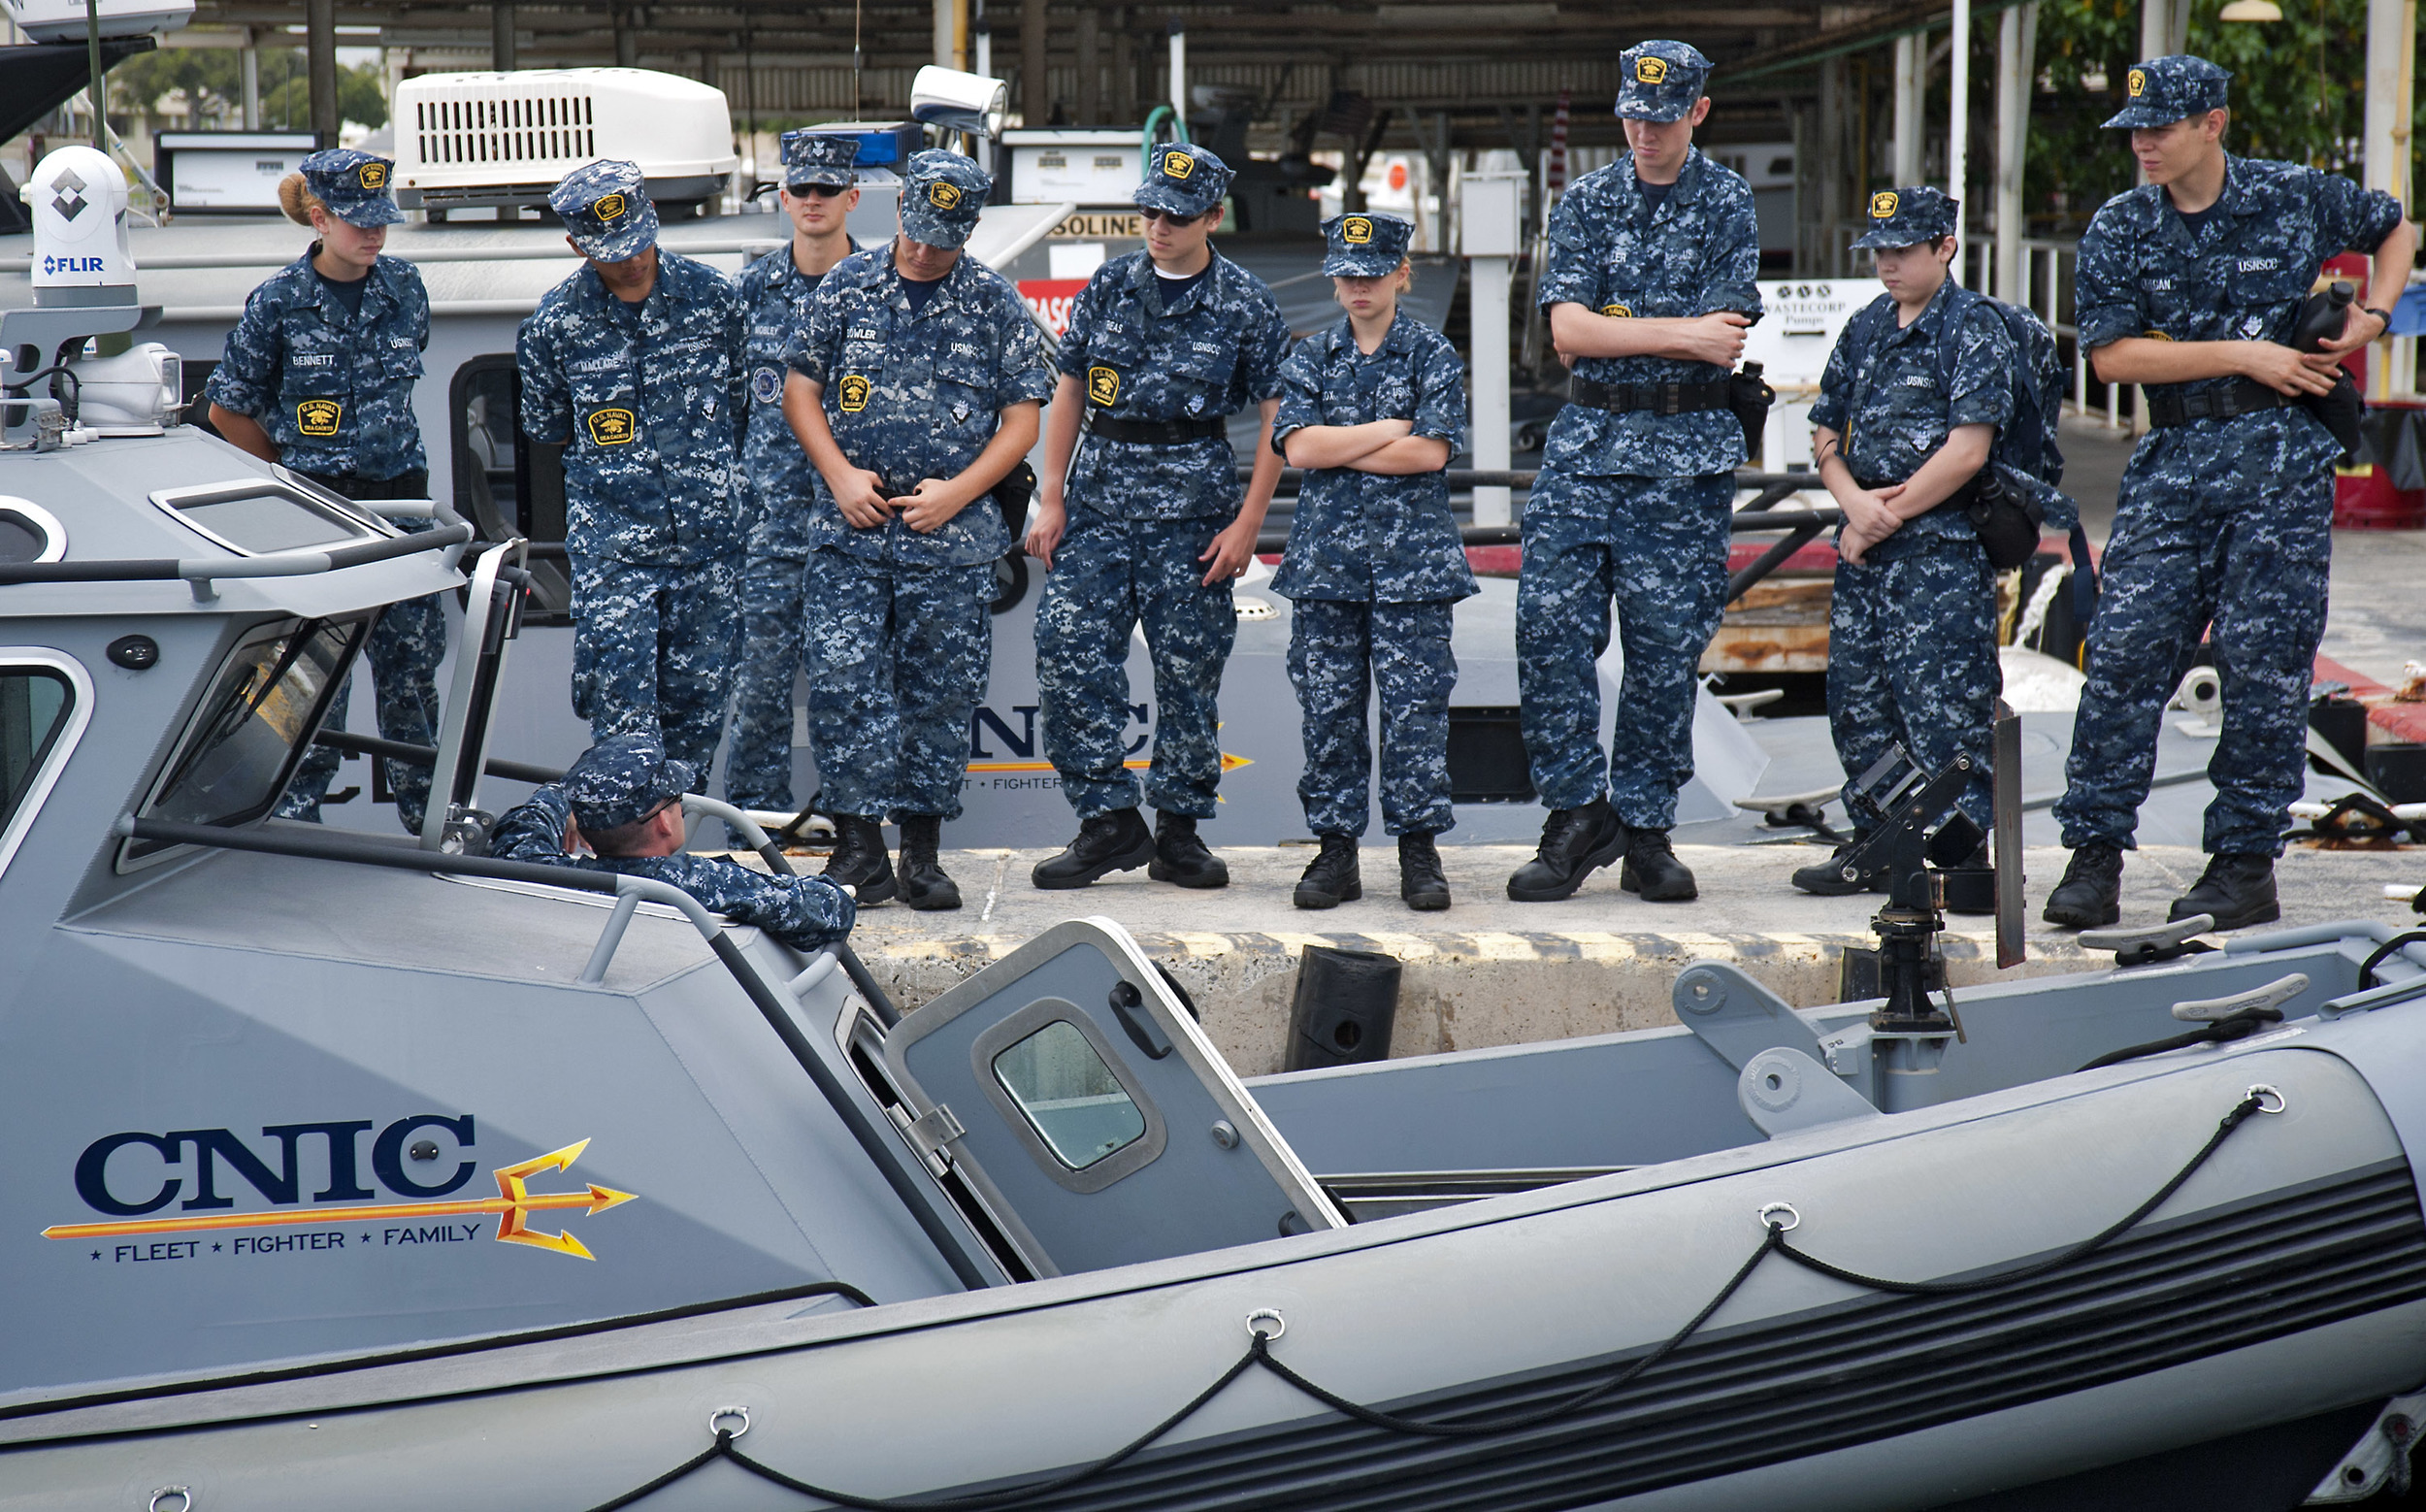 Sea Cadets training in Hawaii